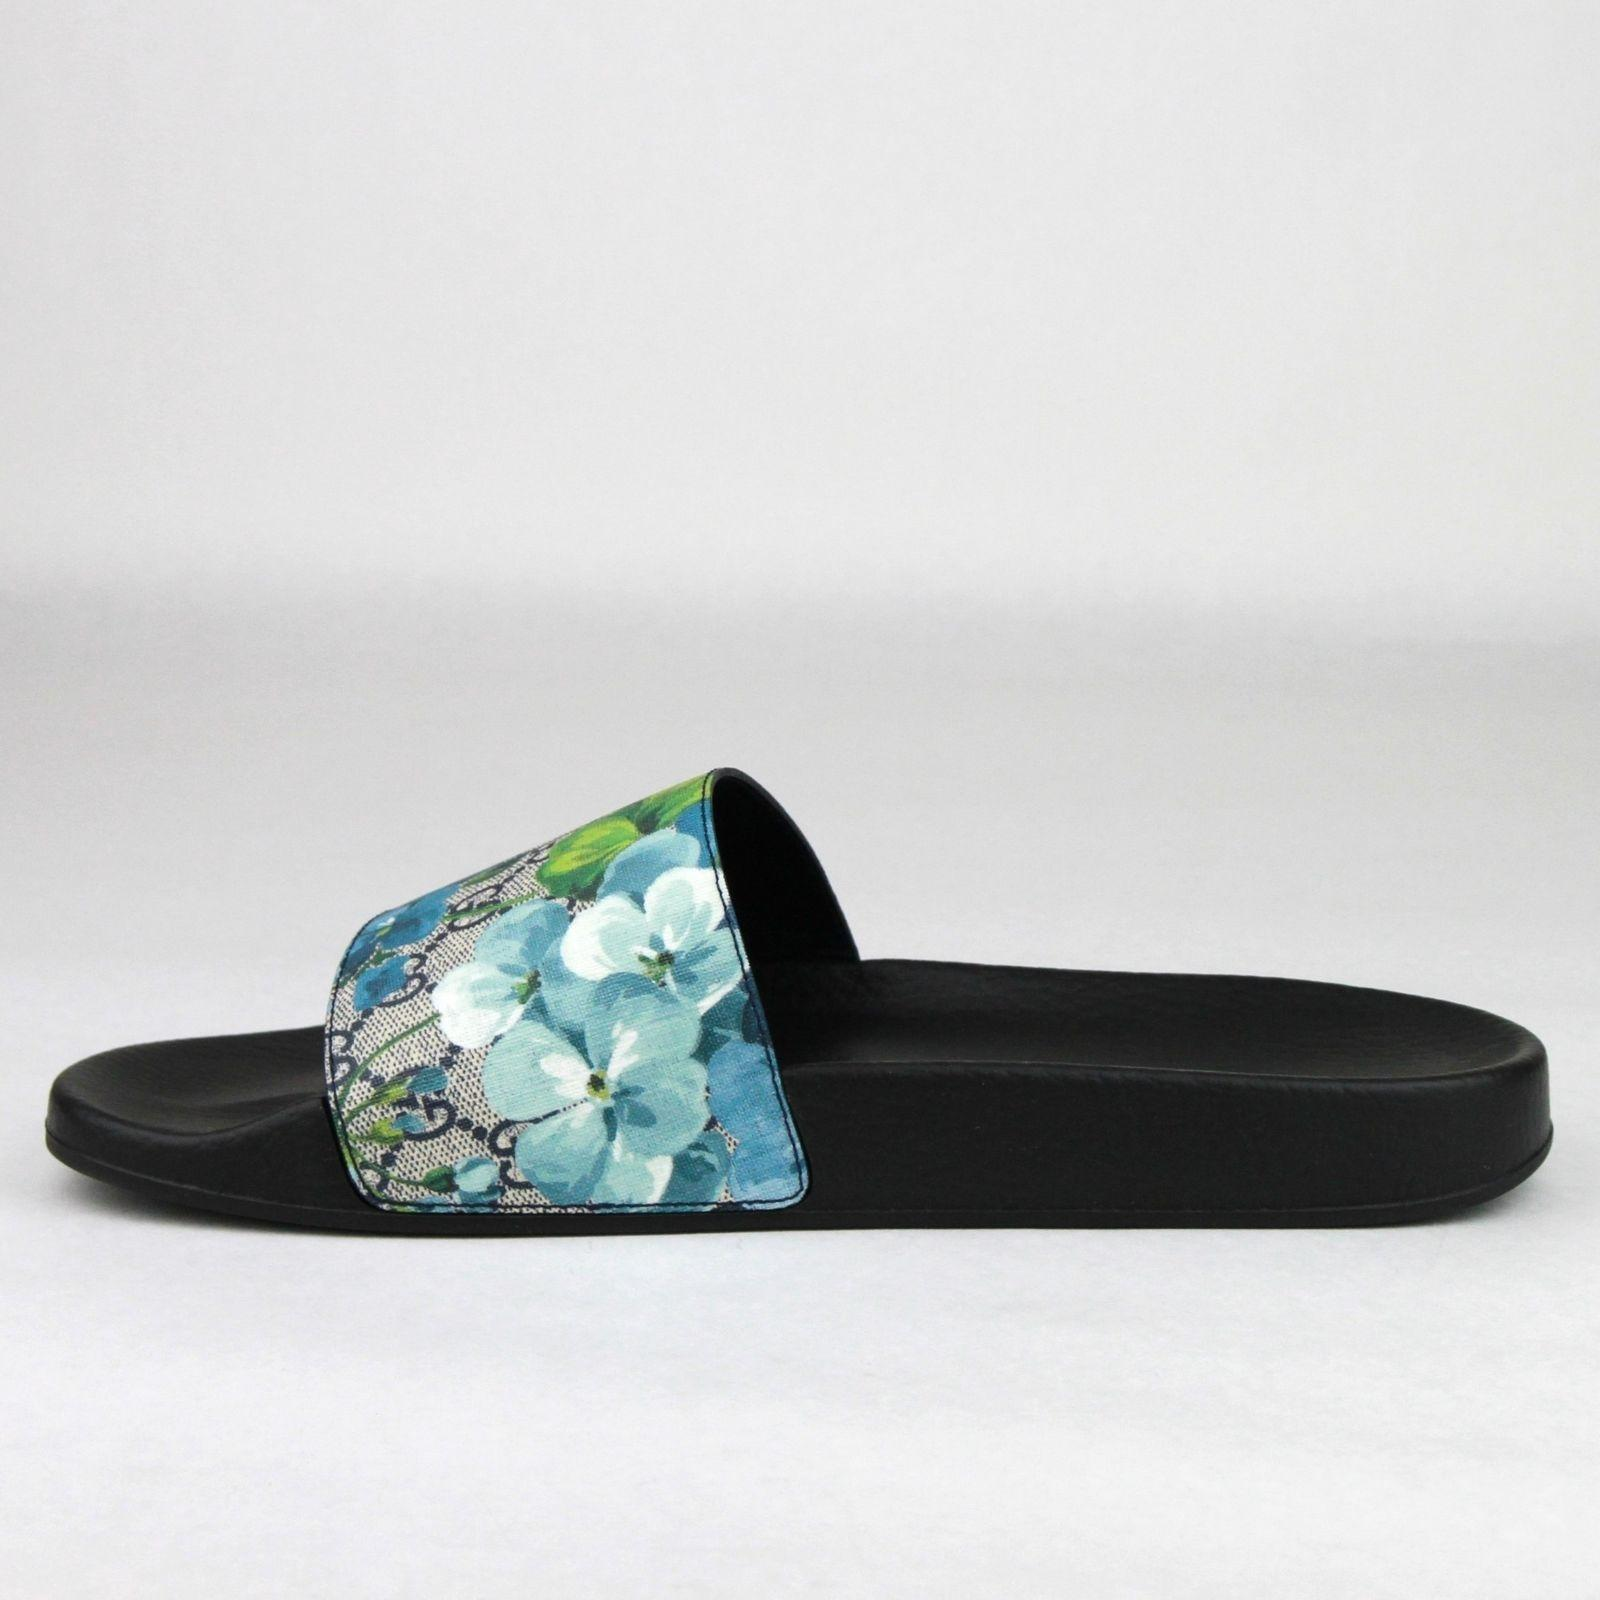 b825bac7cf5 Gucci Blue Men s Bloom Print Flower Slide Sandals 7G   Us 8 407345